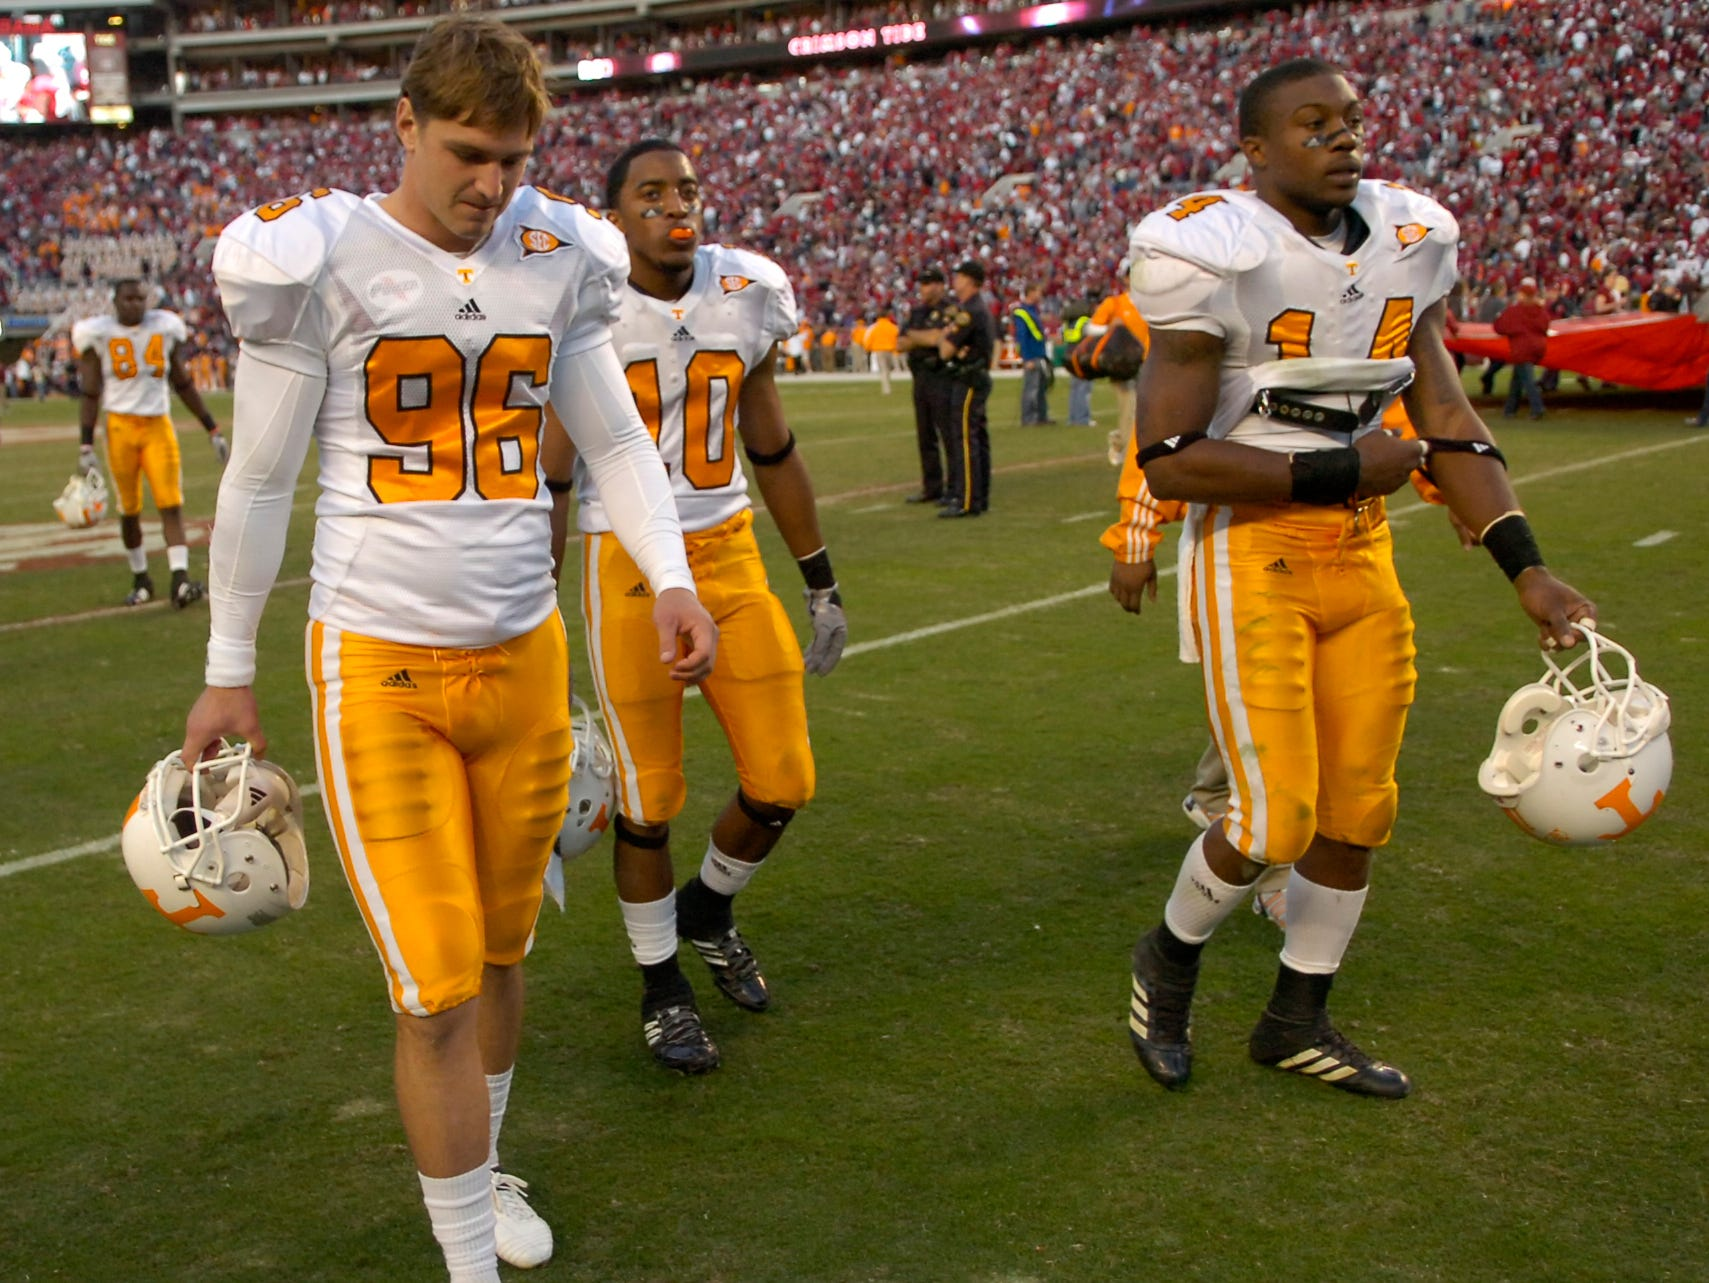 Tennessee players Chad Cunningham, Marsalis Teague and Eric Berry leave the field after the 12-10 loss to Alabama at Bryant Denny Stadium in Tuscaloosa on Saturday, Oct. 24, 2009.